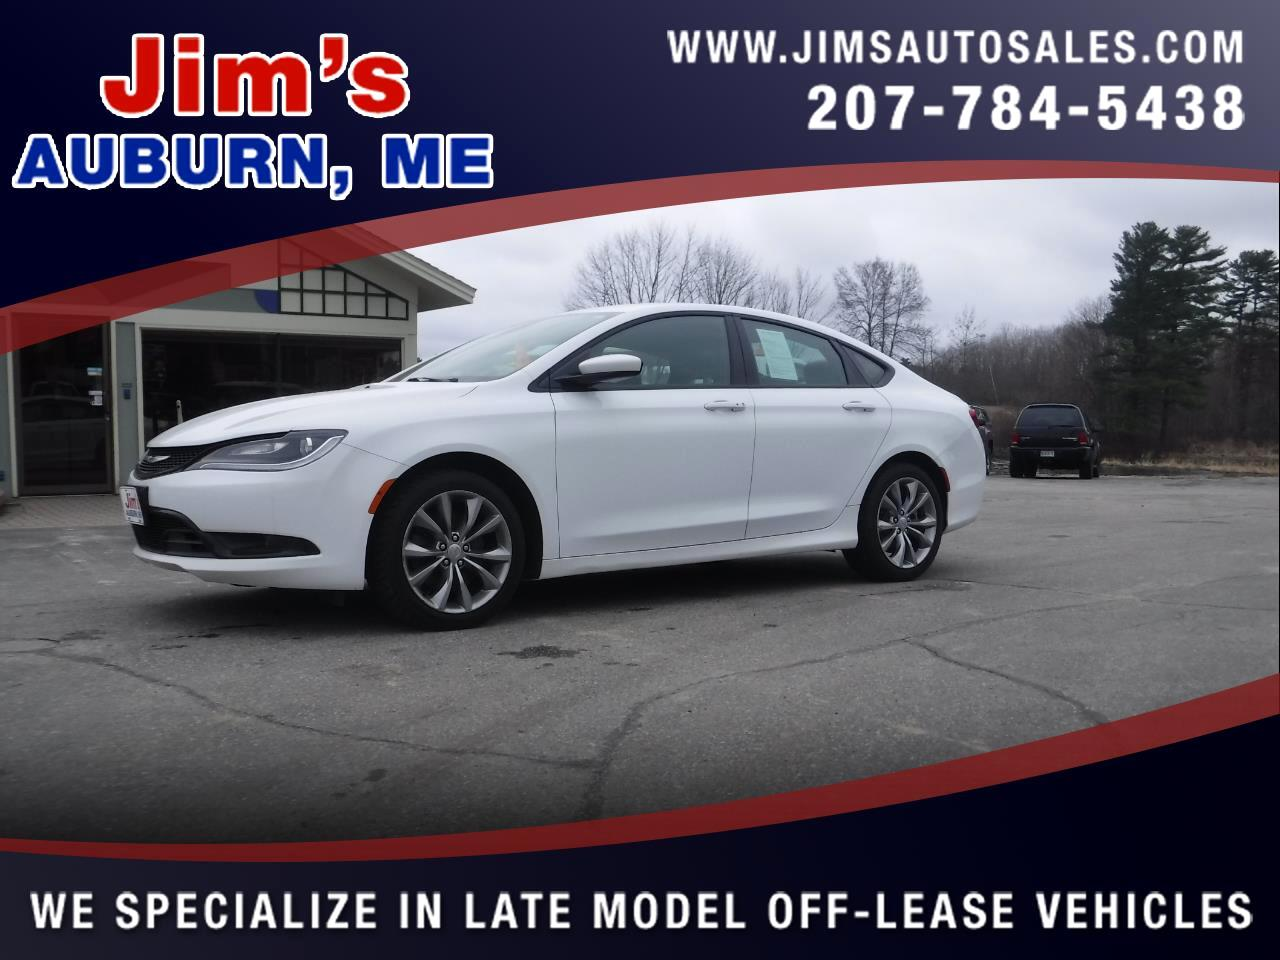 2015 Chrysler 200 4dr Sdn S AWD